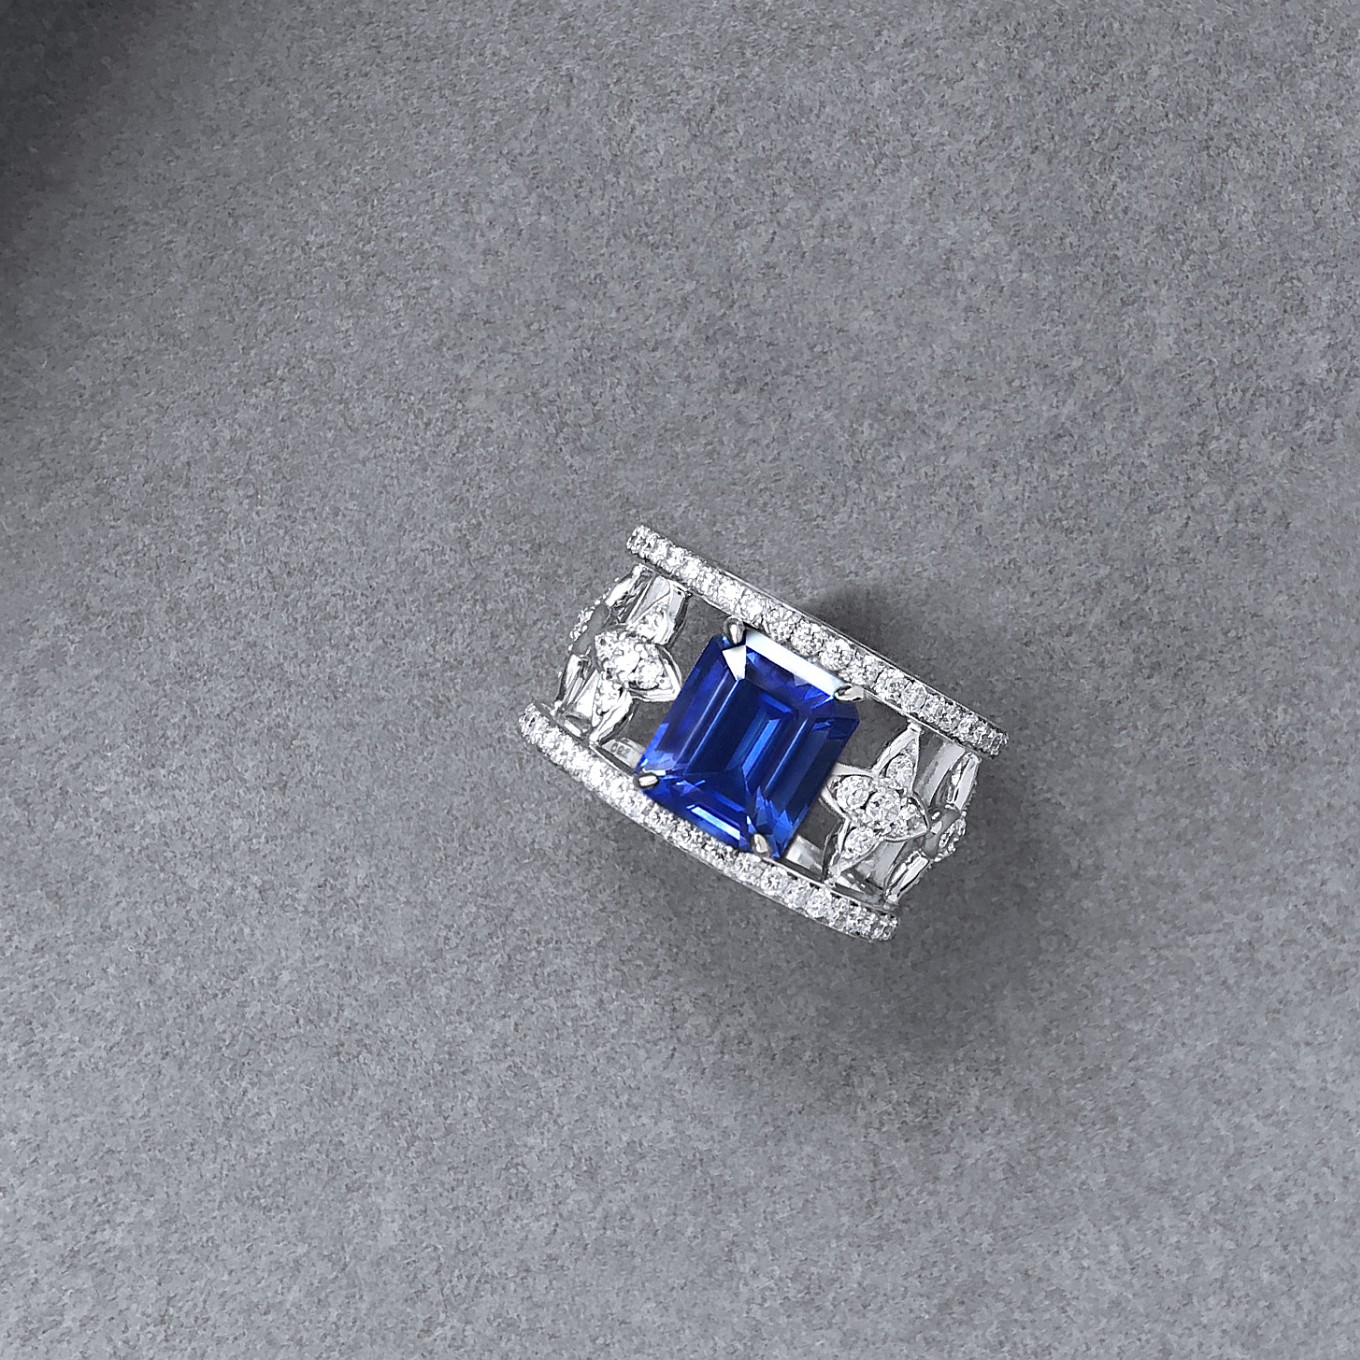 5.5 CT EMERALD CUT BLUE SAPPHIRE & DIAMOND RING IN WHITE GOLD